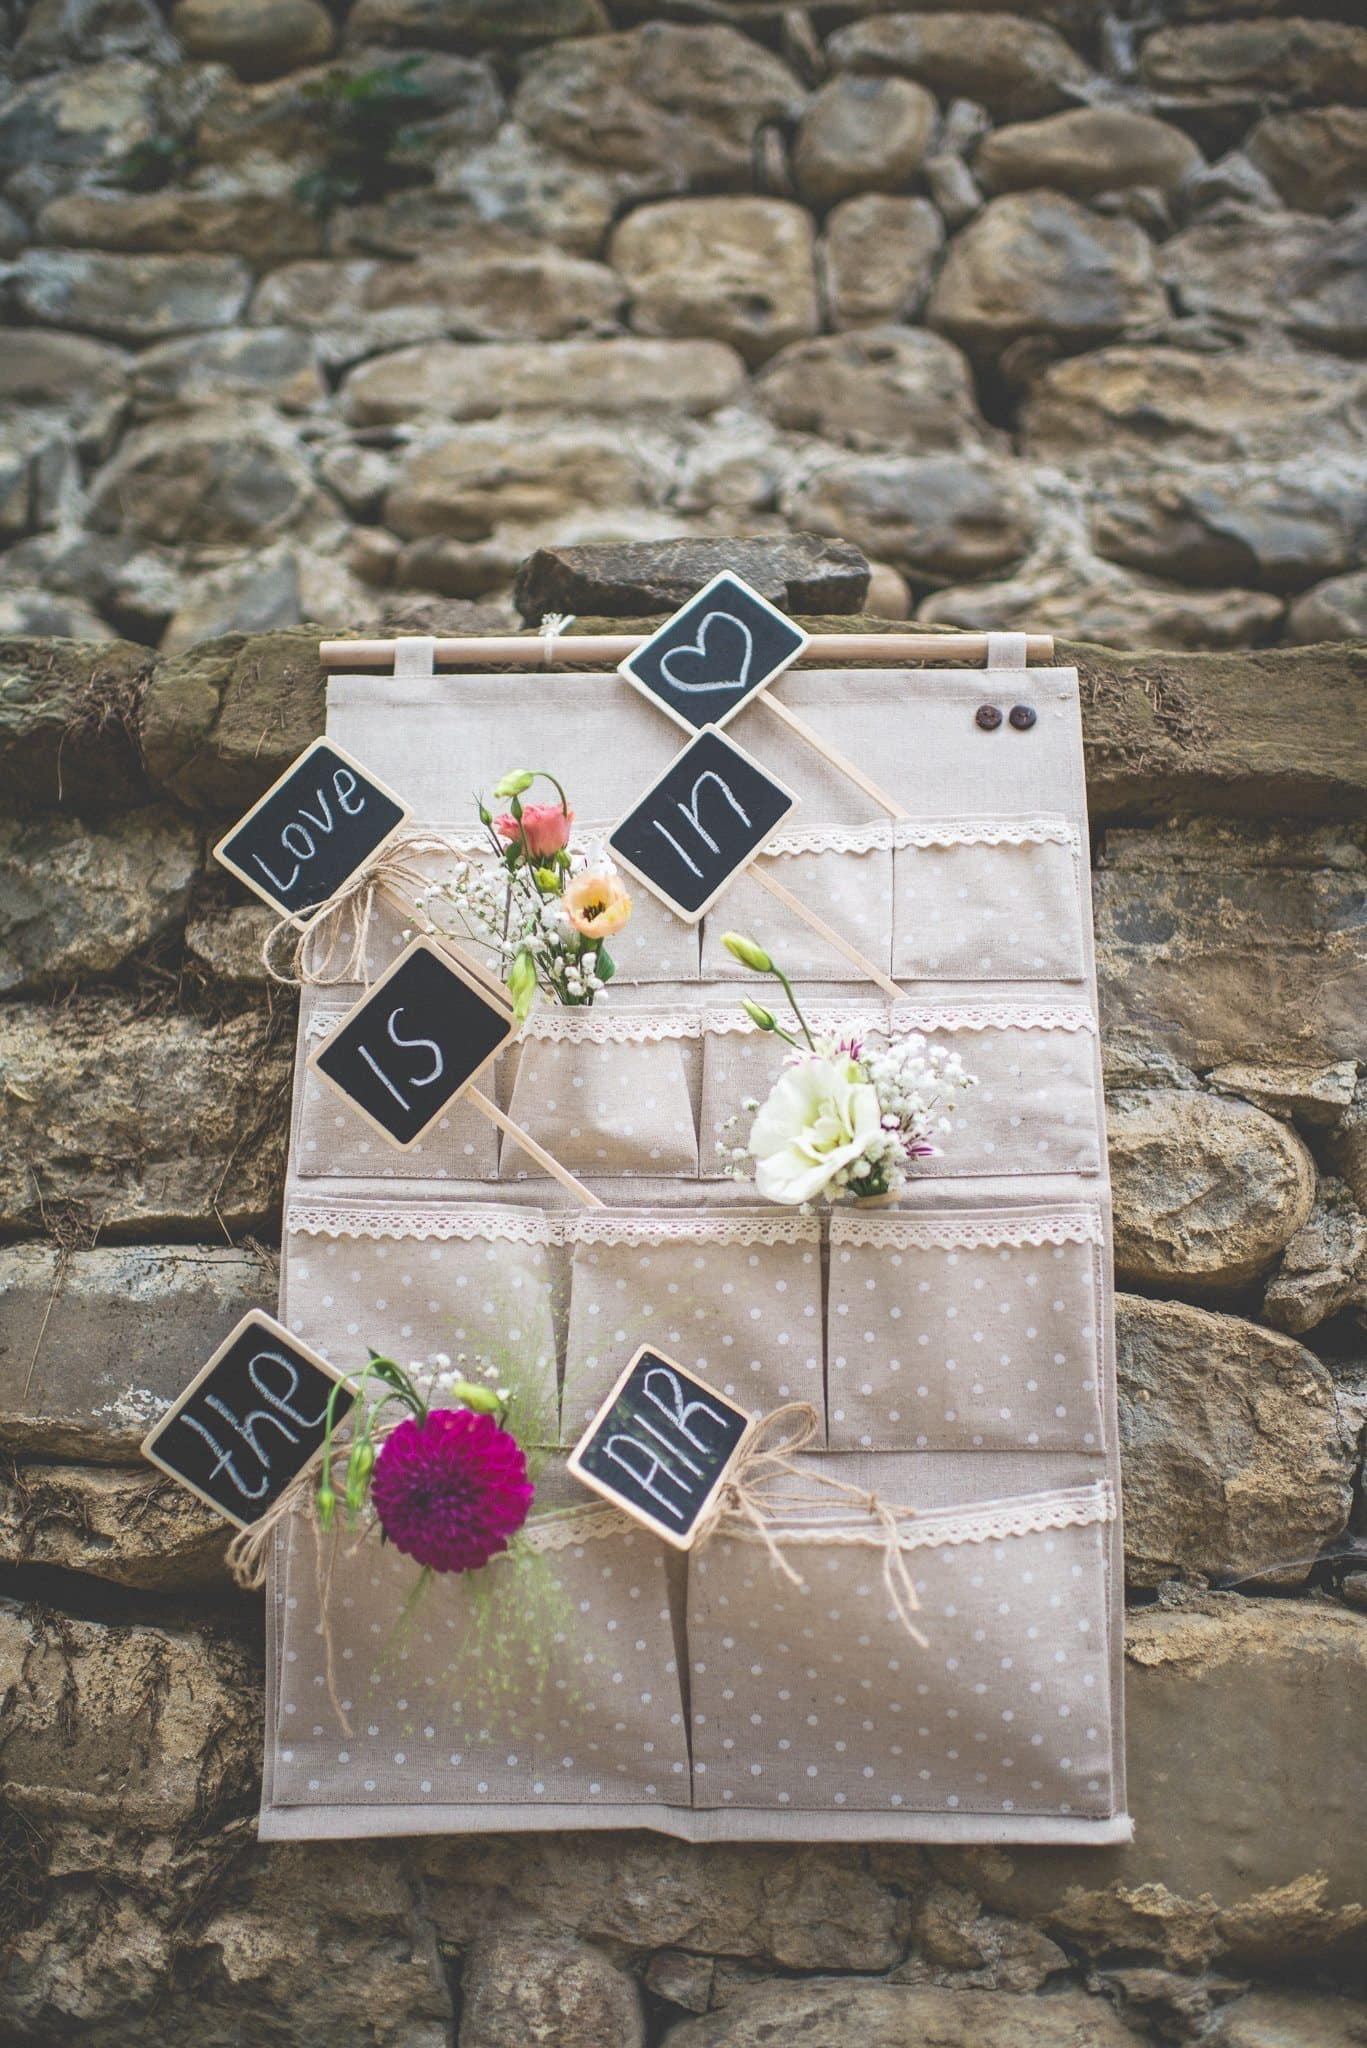 'Love is in the air' is written on individual chalkboard signs and placed in fabric pockets along with small posies of flowers